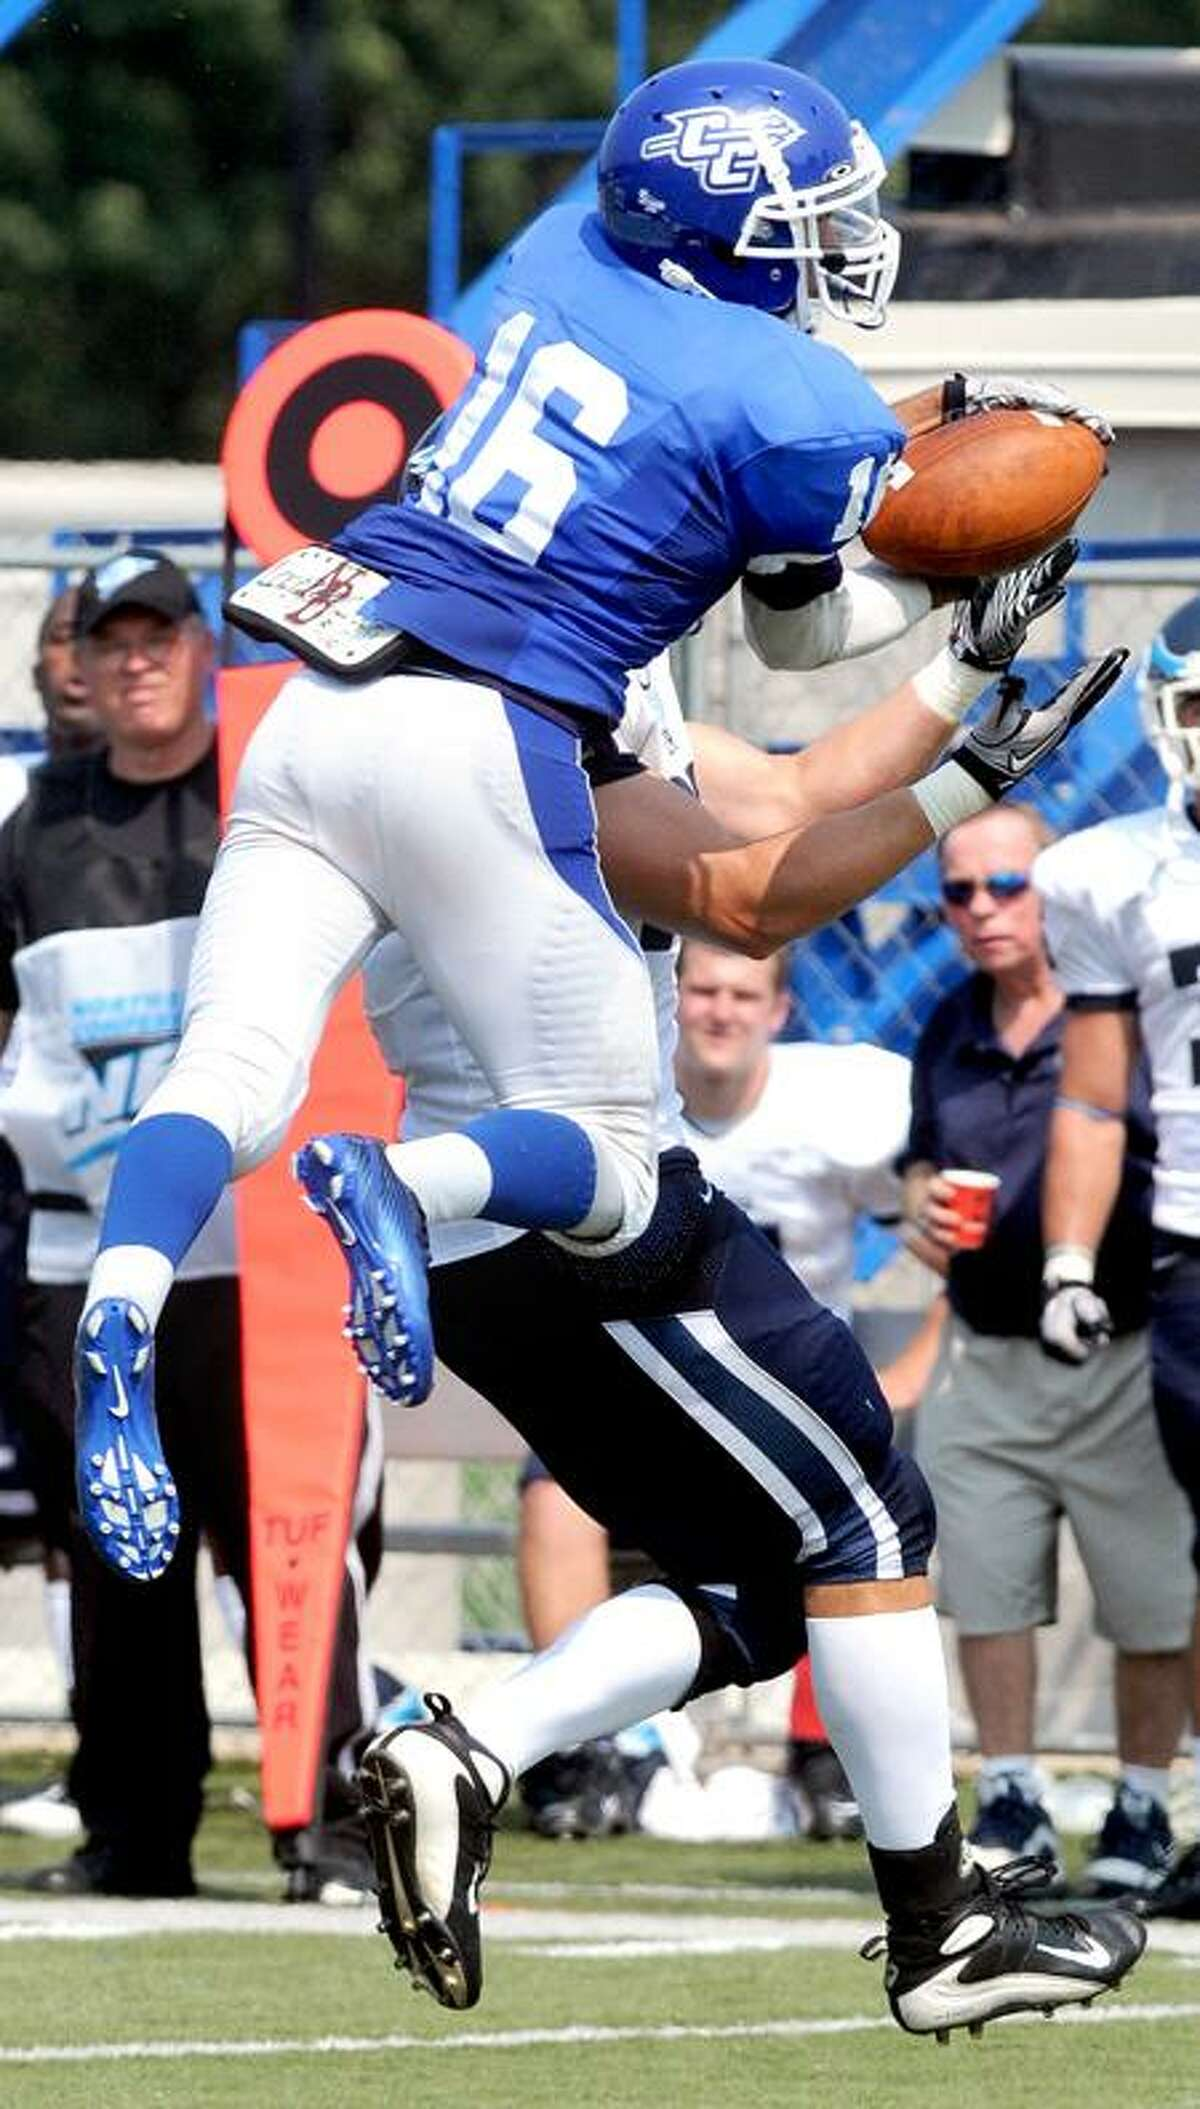 Chris Linares (top) of CCSU breaks up a pass intended for Curtis Shappy (bottom) in the second half in New Britain on 9/3/2011. Photo by Arnold Gold/New Haven Register AG0423B